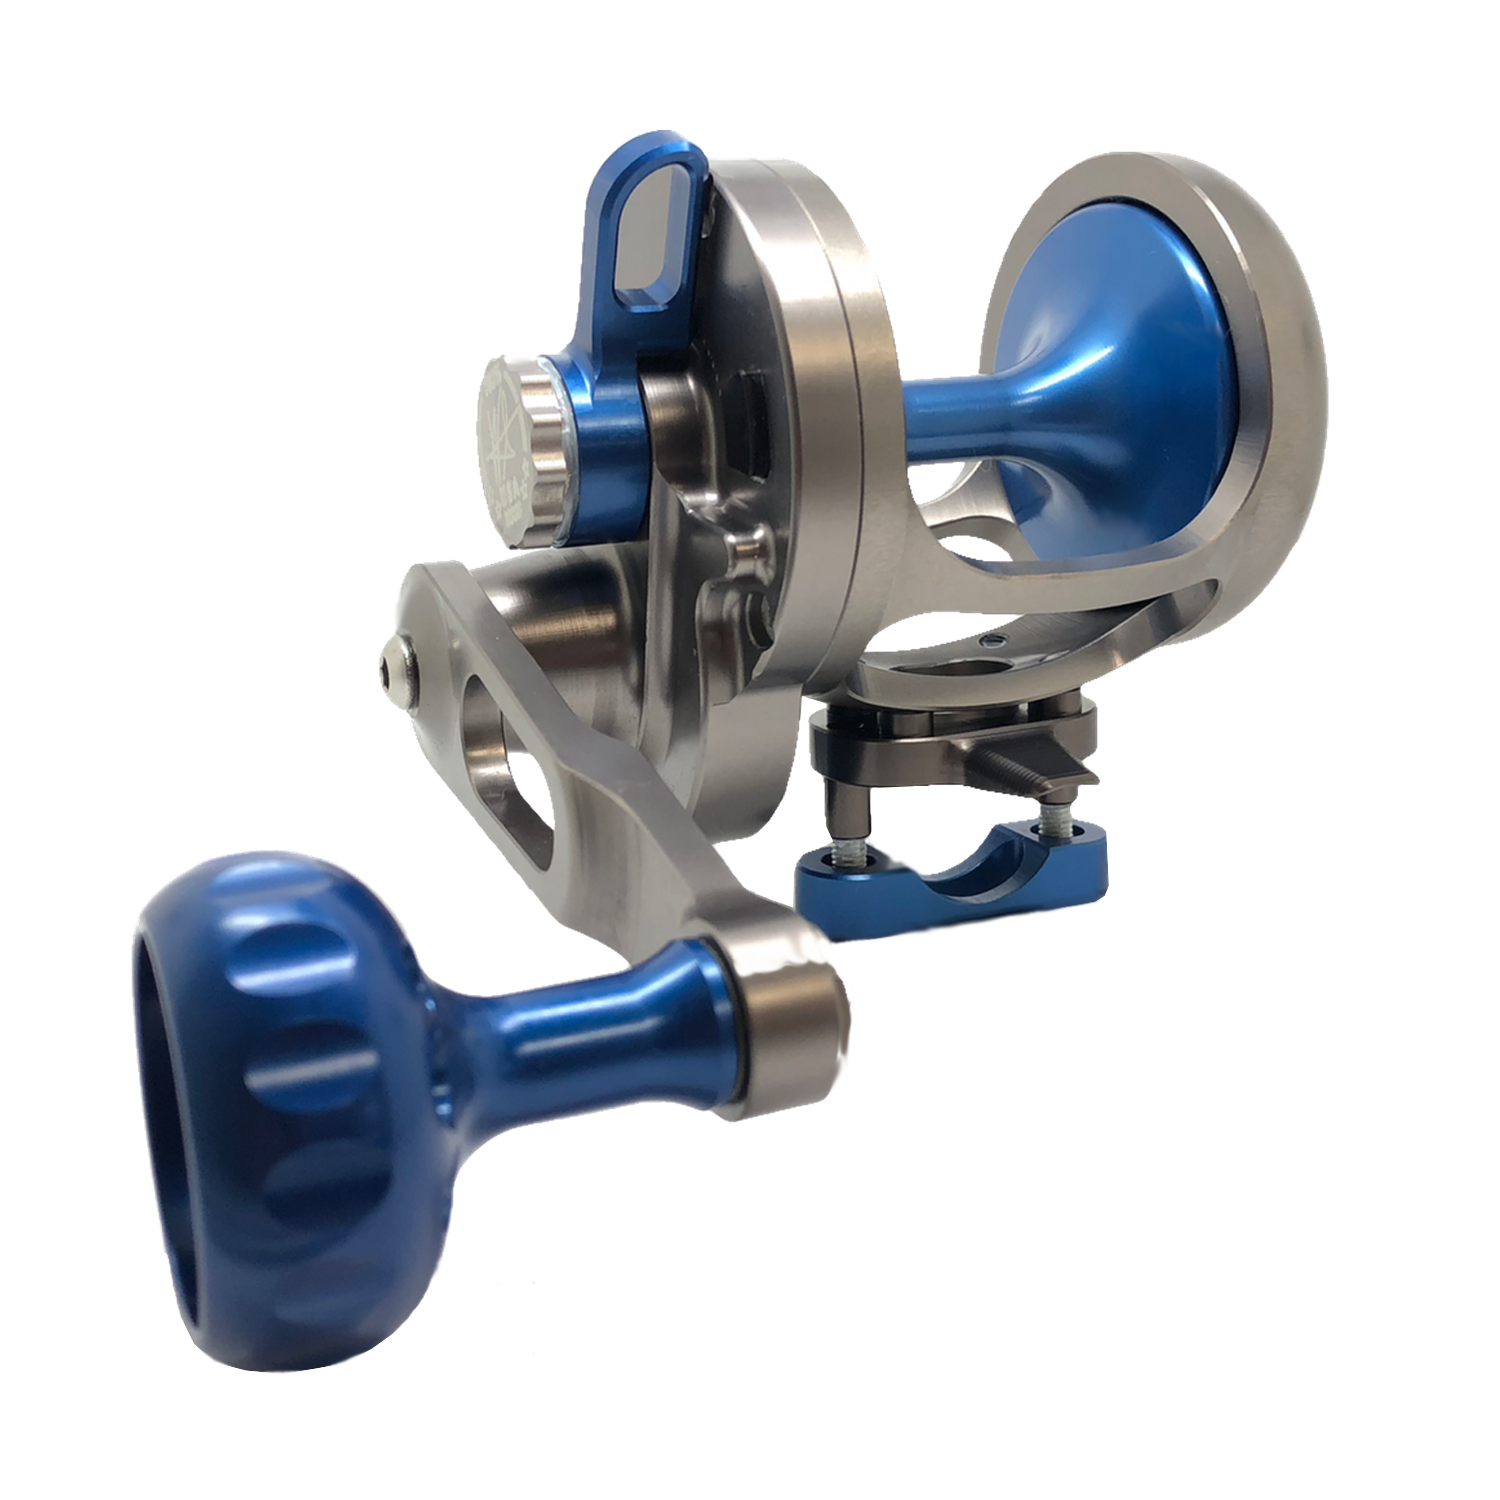 Seigler Conventional reels page which includes all lever drag and star drag reels.